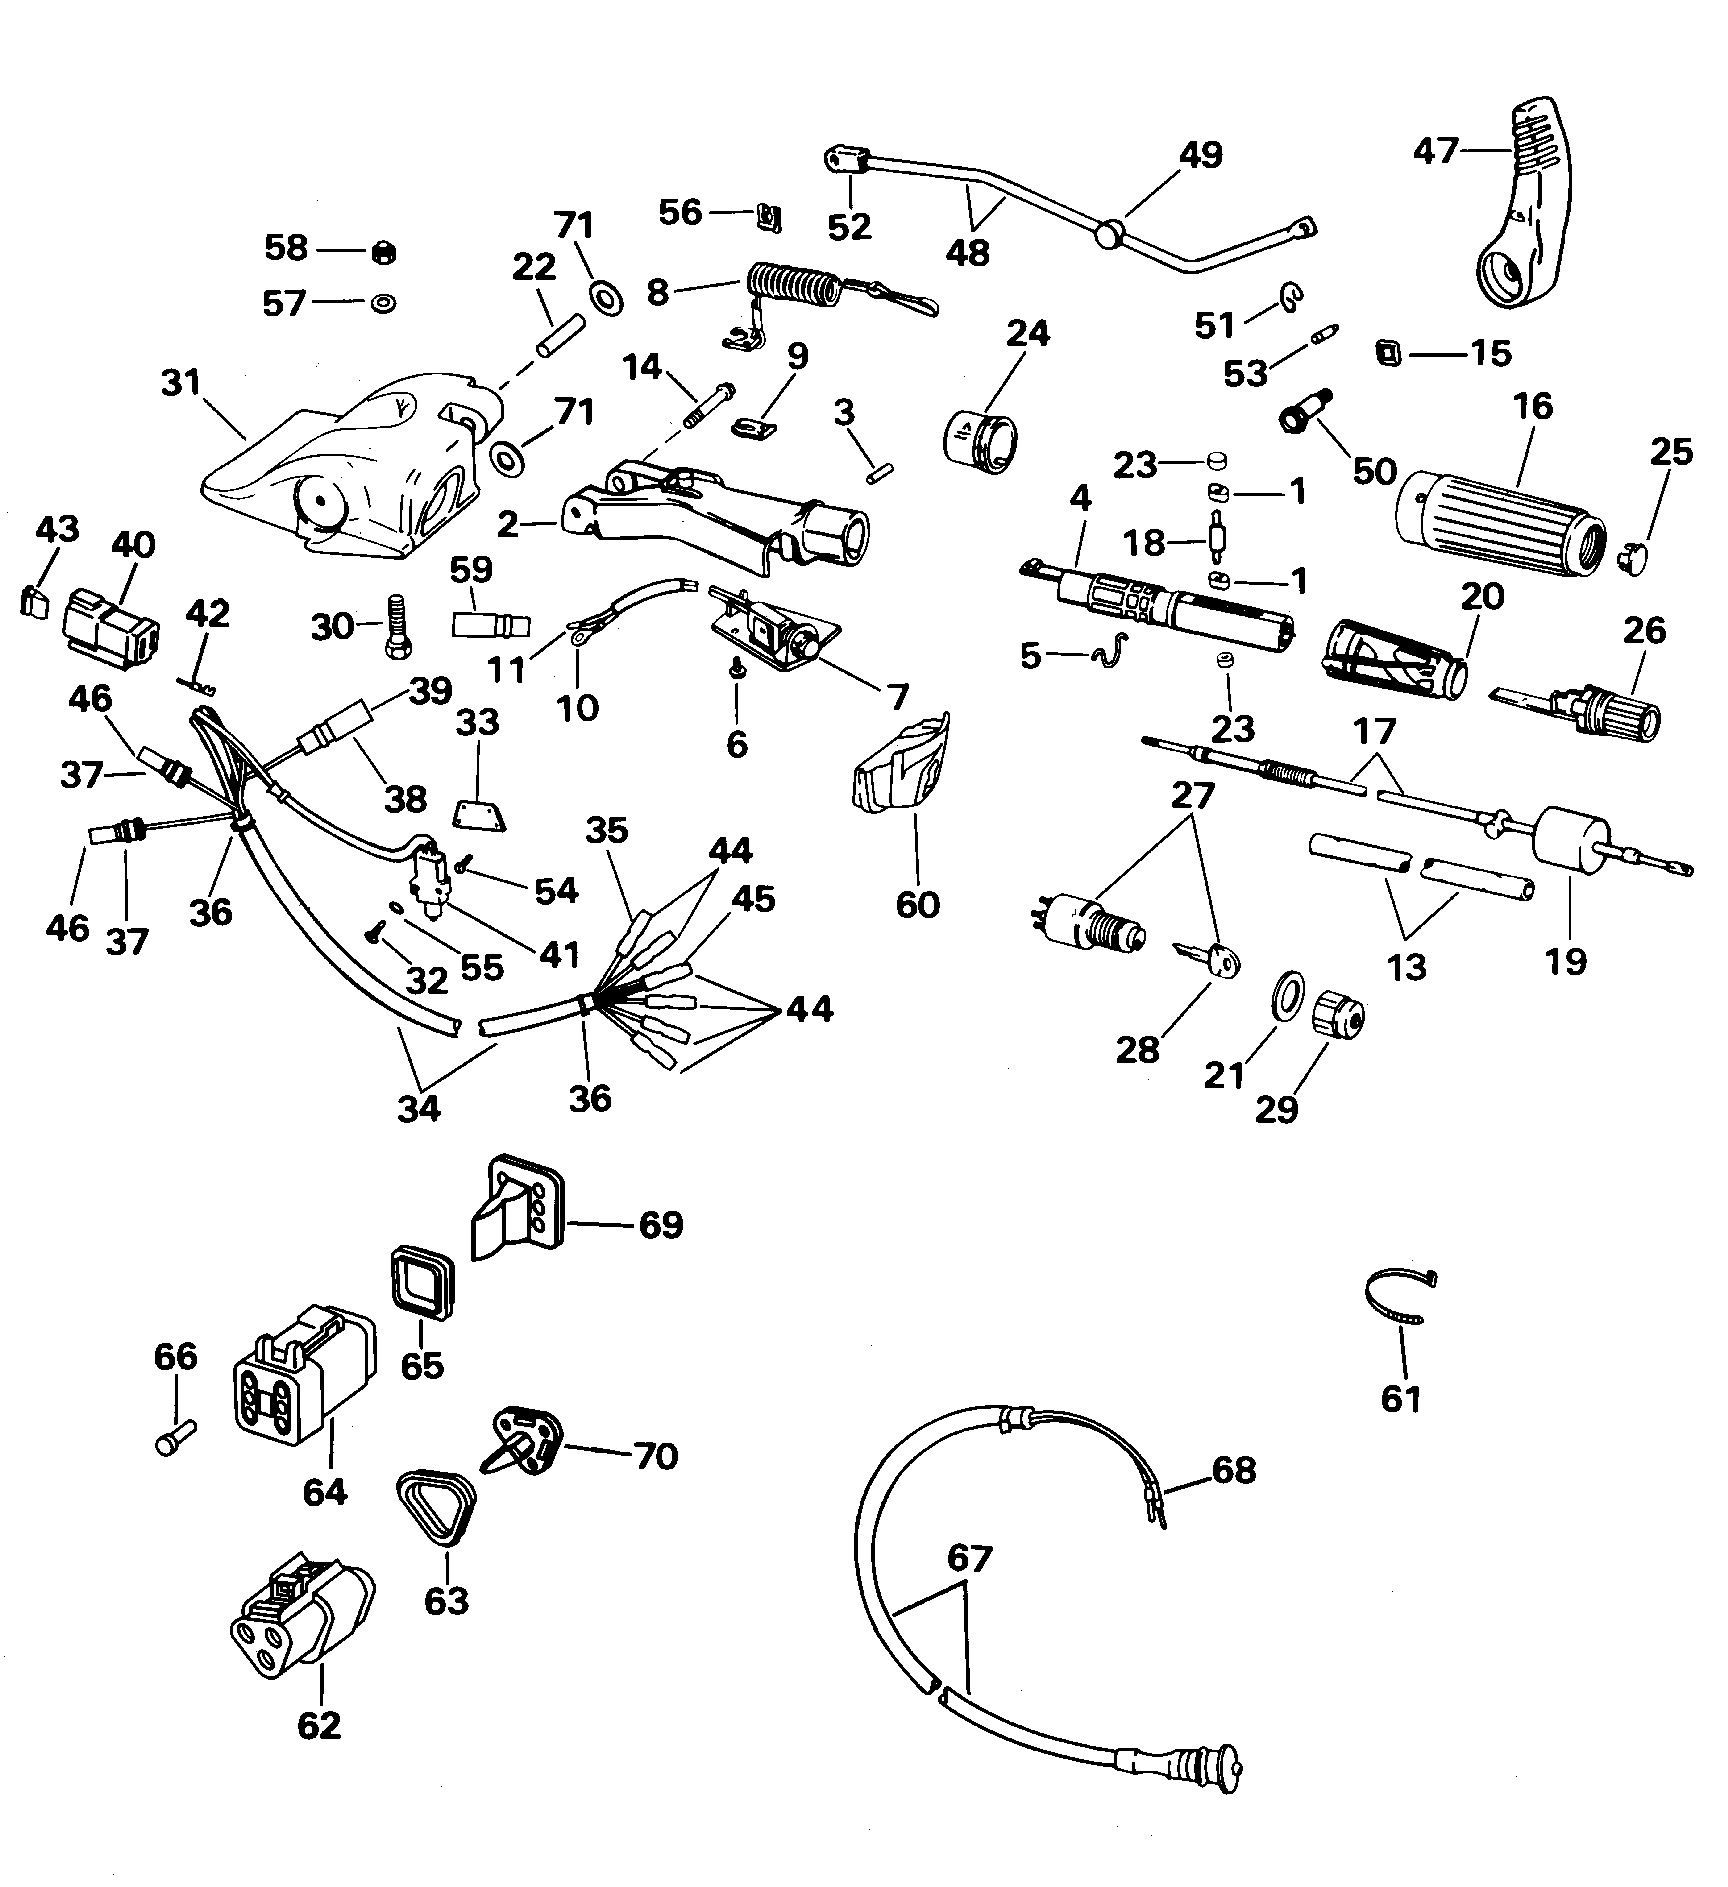 Wiring Diagram Also Eclipse Mitsubishi Wiring Diagram On 95 Eclipse